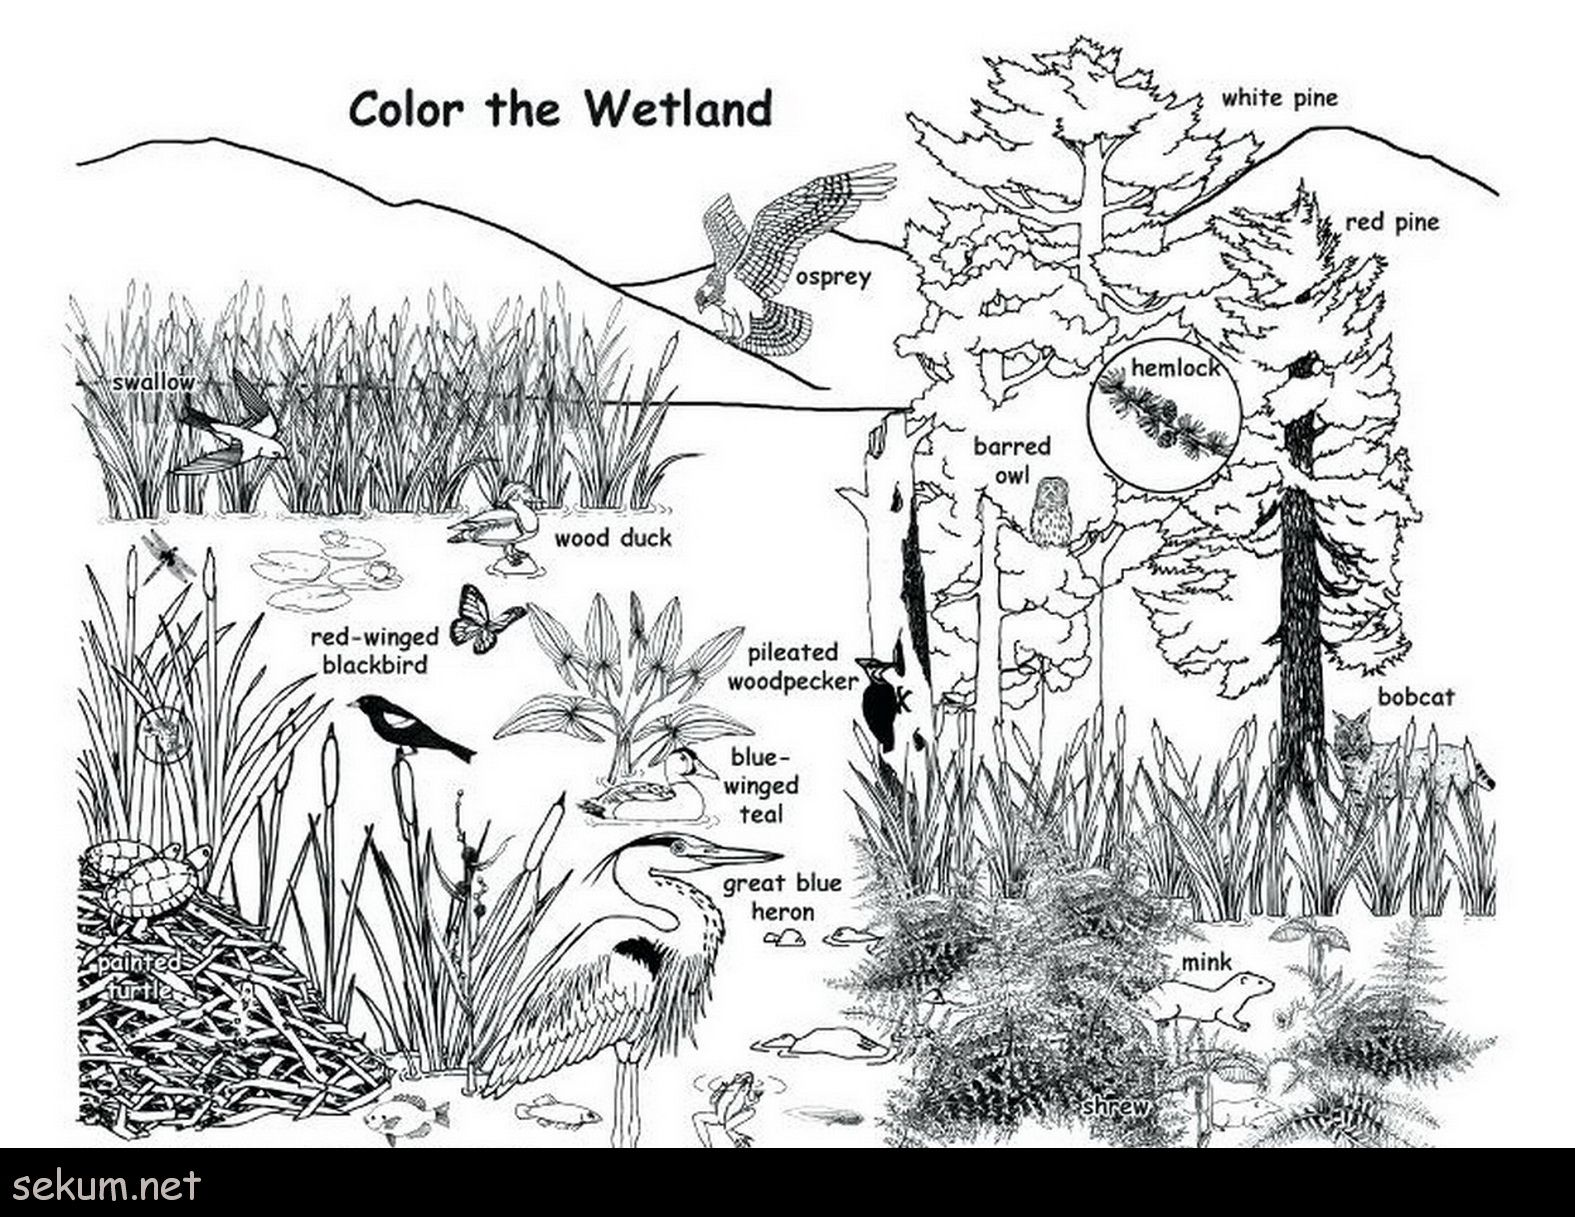 Wetland Plants And Animals Coloring Page Wetland Animal Habitats Coloring Pages